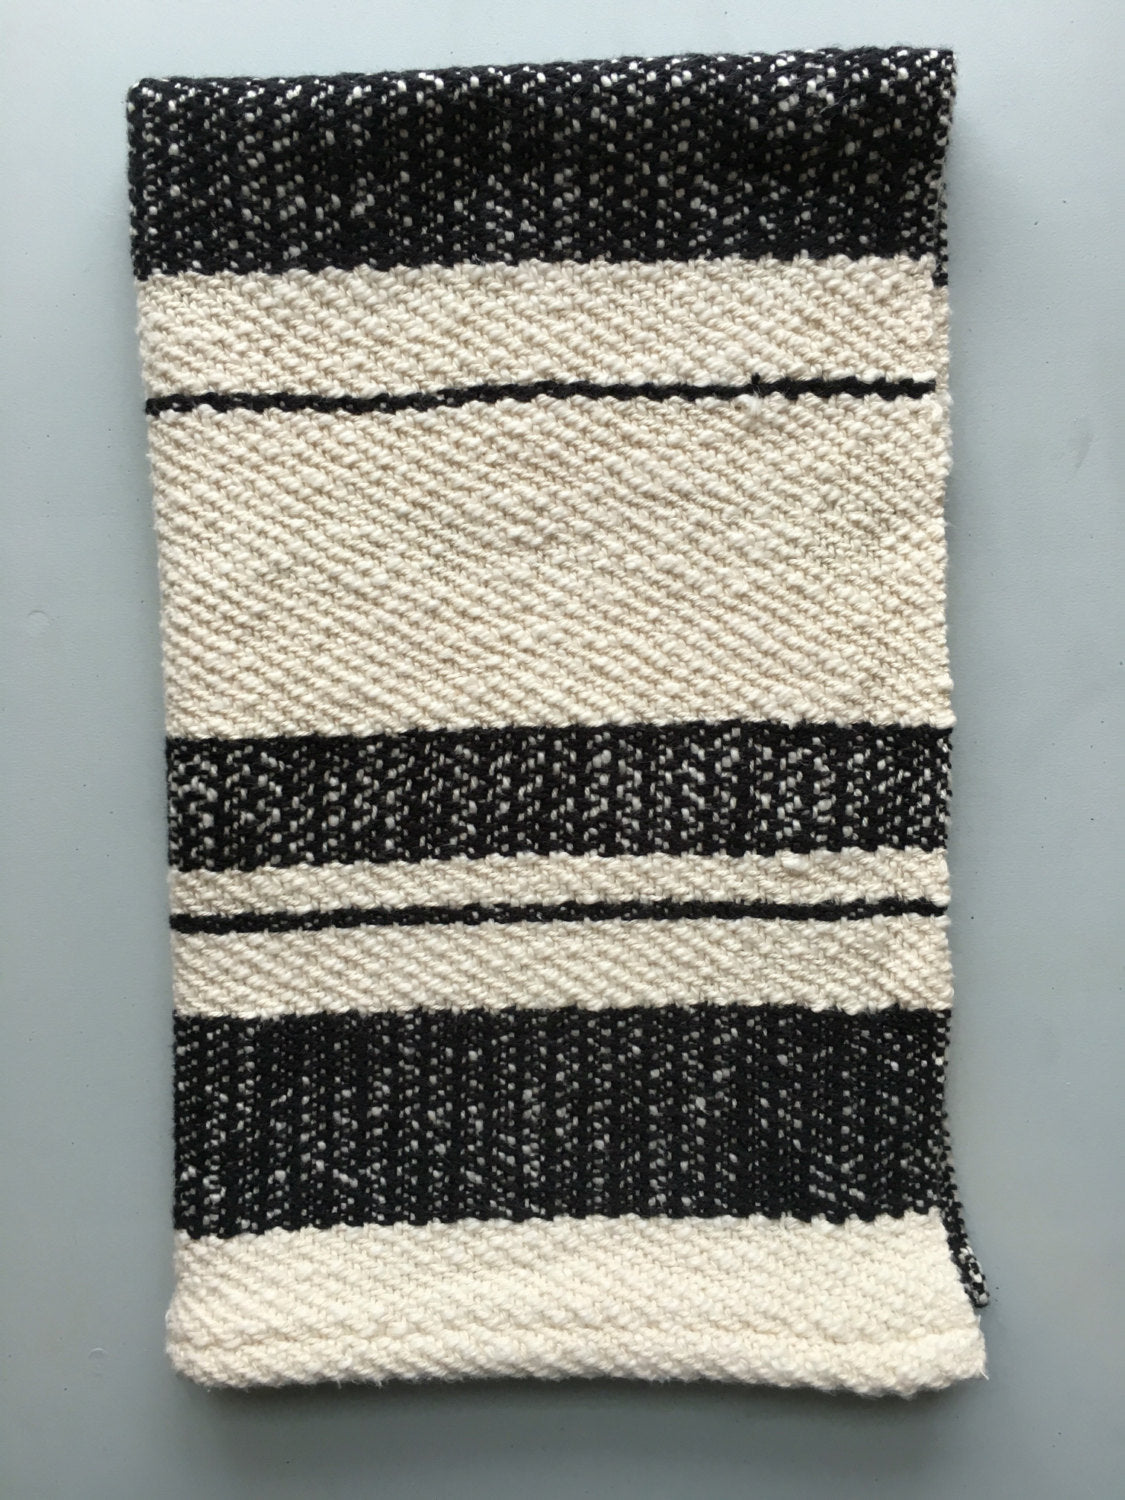 Dish Towel Woven Towel Black and White – Bristol Looms